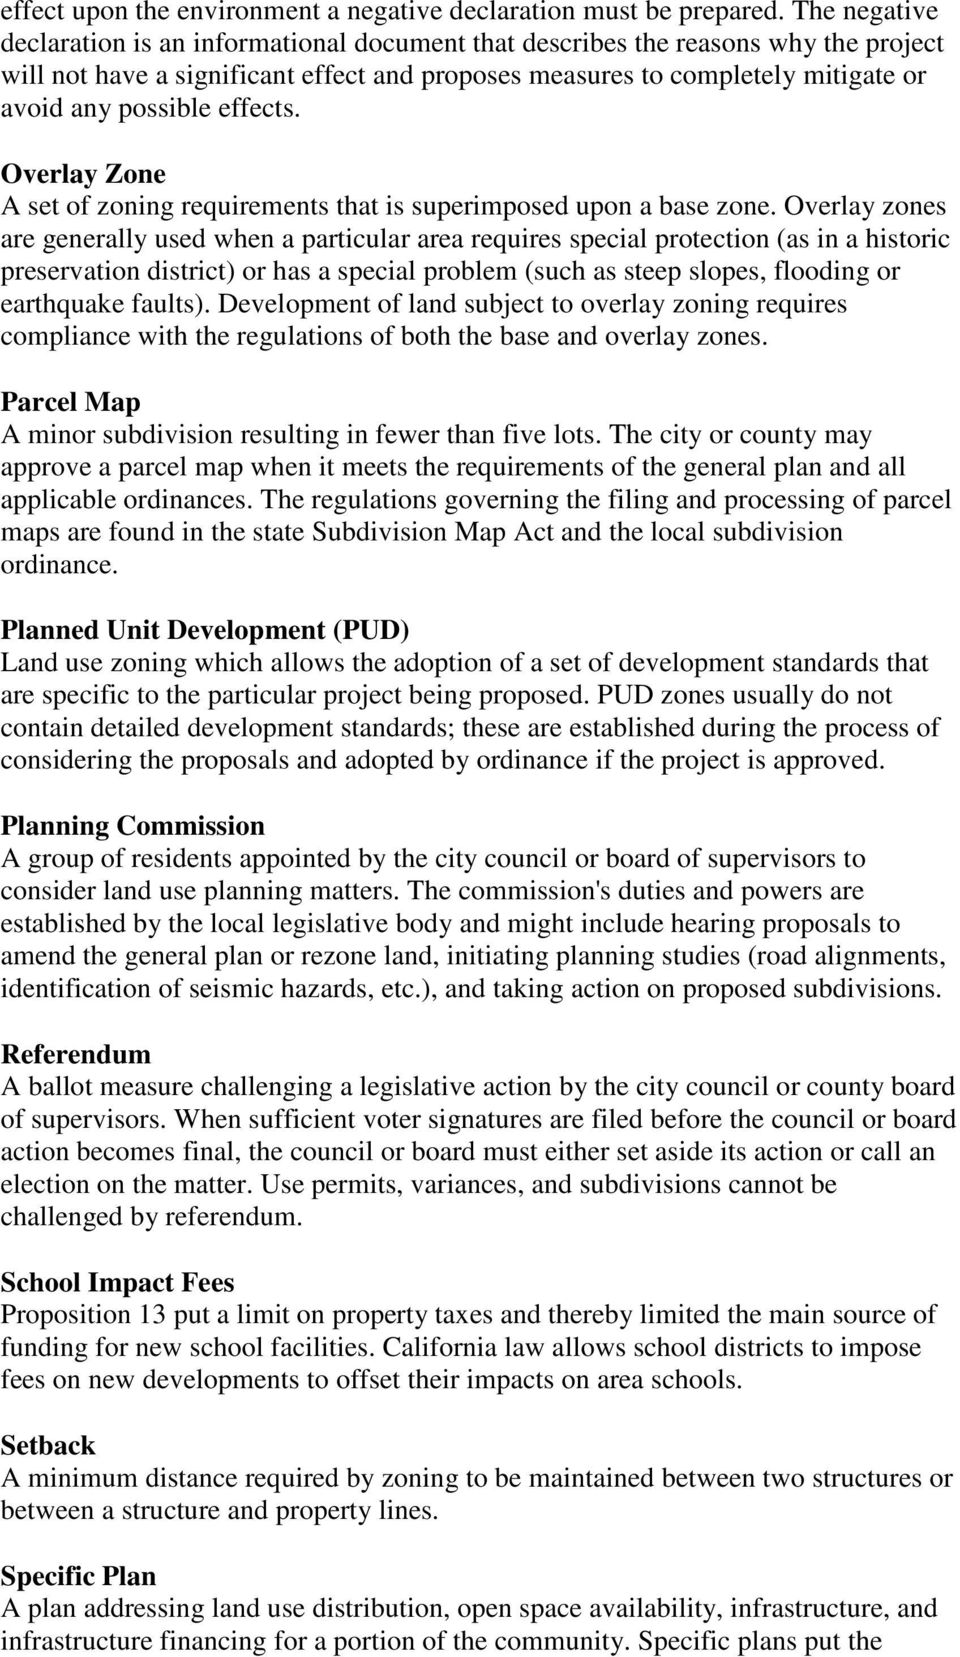 effects. Overlay Zone A set of zoning requirements that is superimposed upon a base zone.